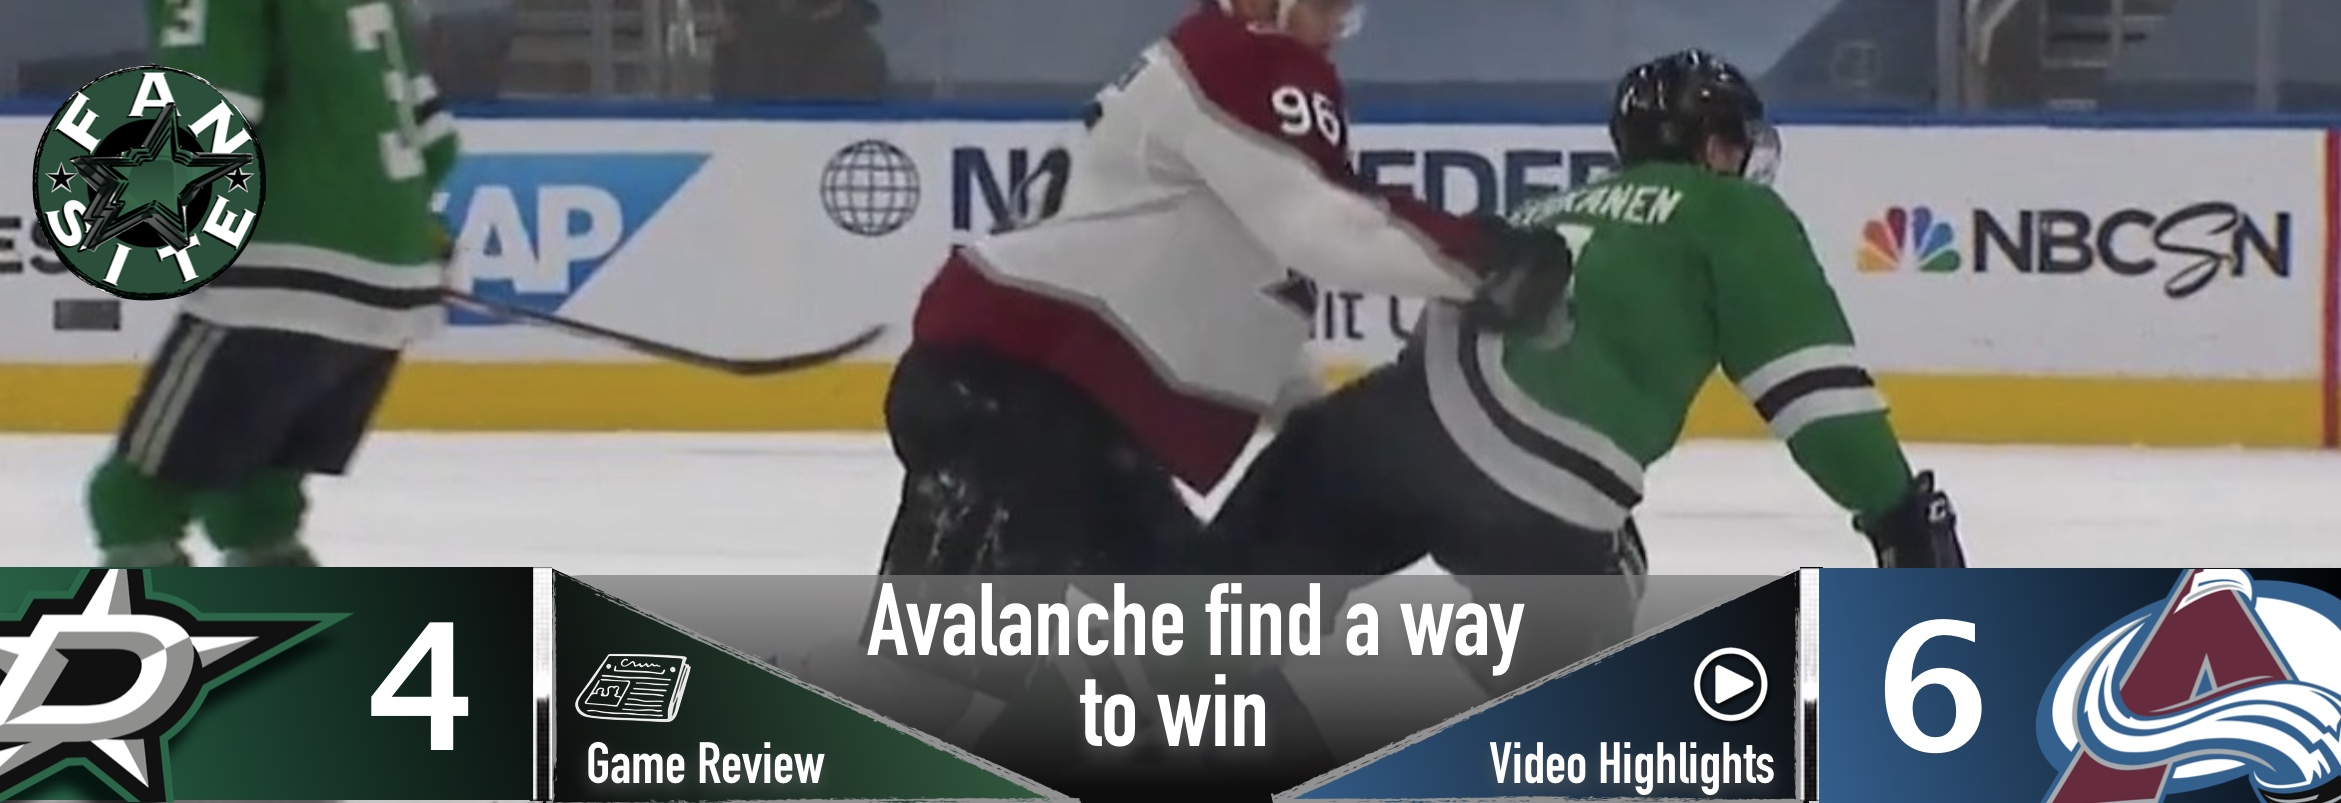 Avalanche find a way to win